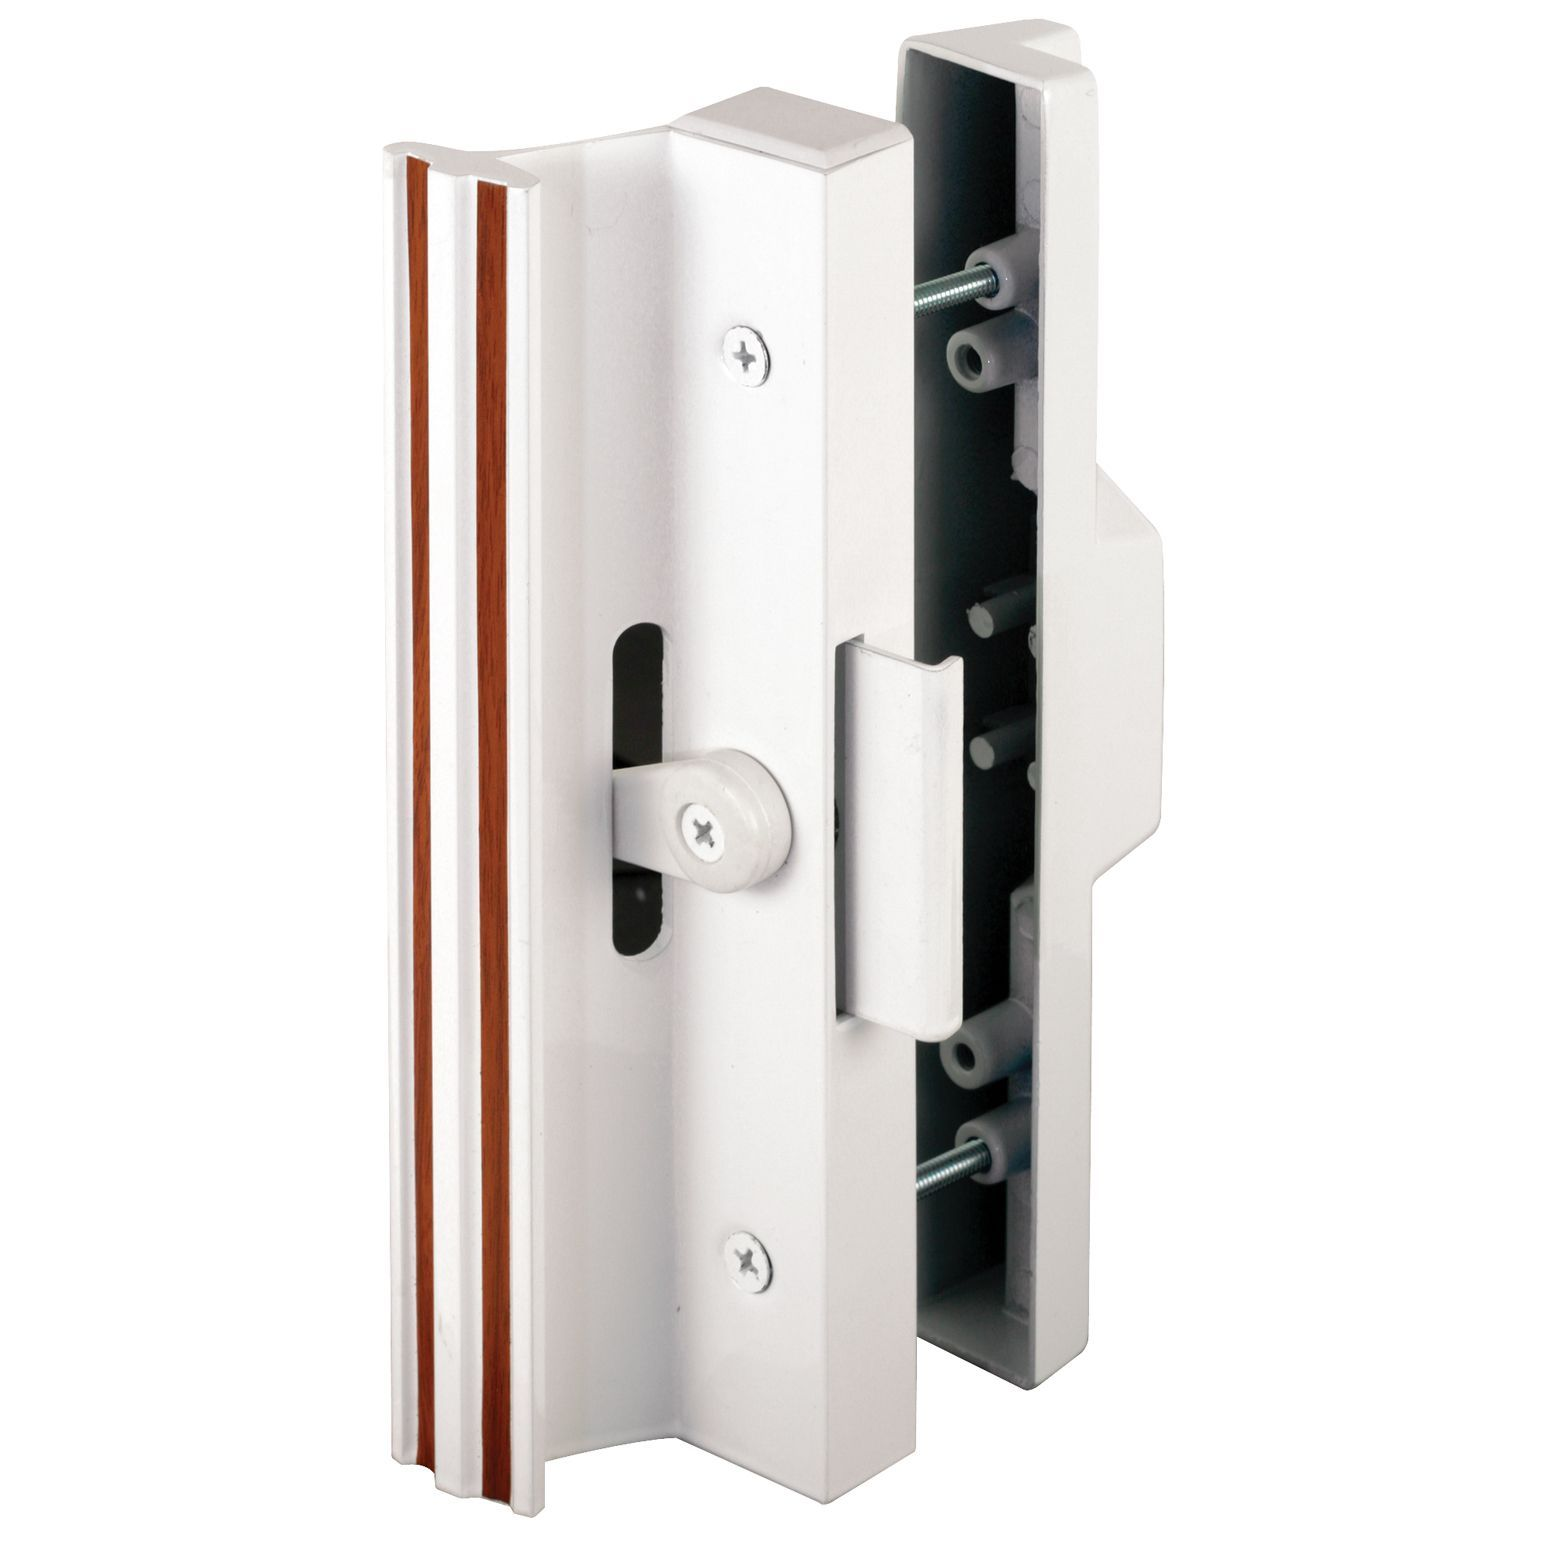 types store sold different and garage locks of trend appealing lock door boise for pic secure u bar ideas tfast security pict marvelous doors popular